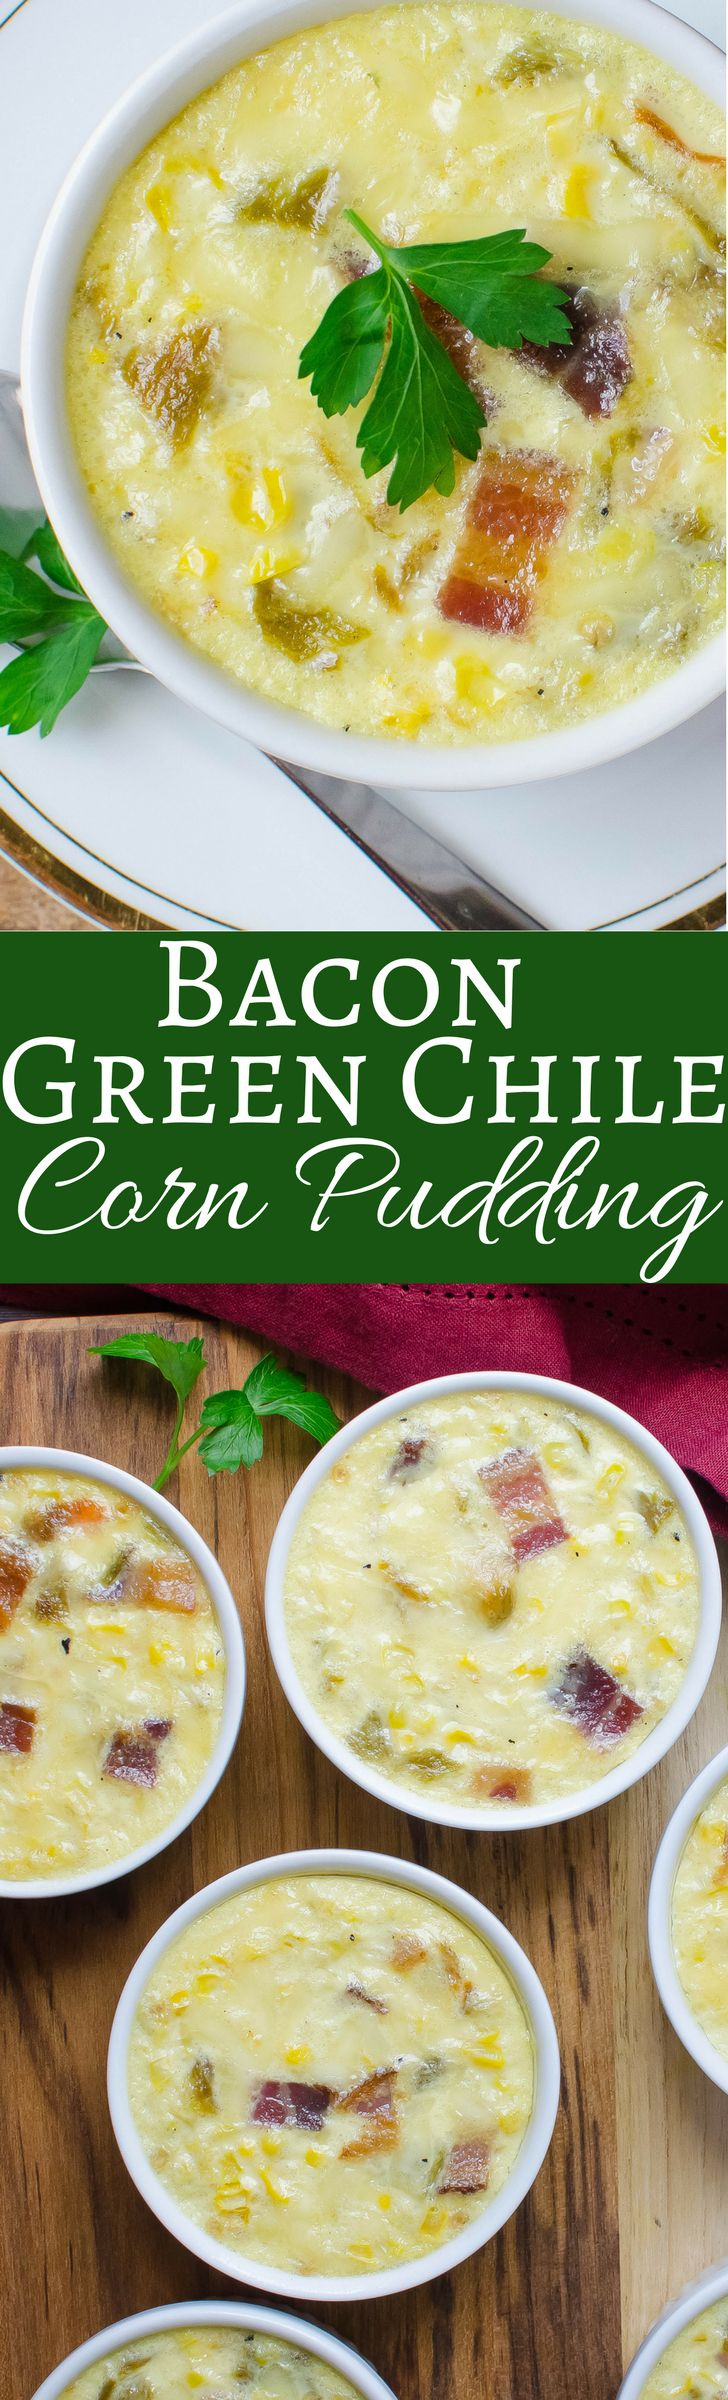 Bacon Green Chile Corn Pudding | Garlic & Zest